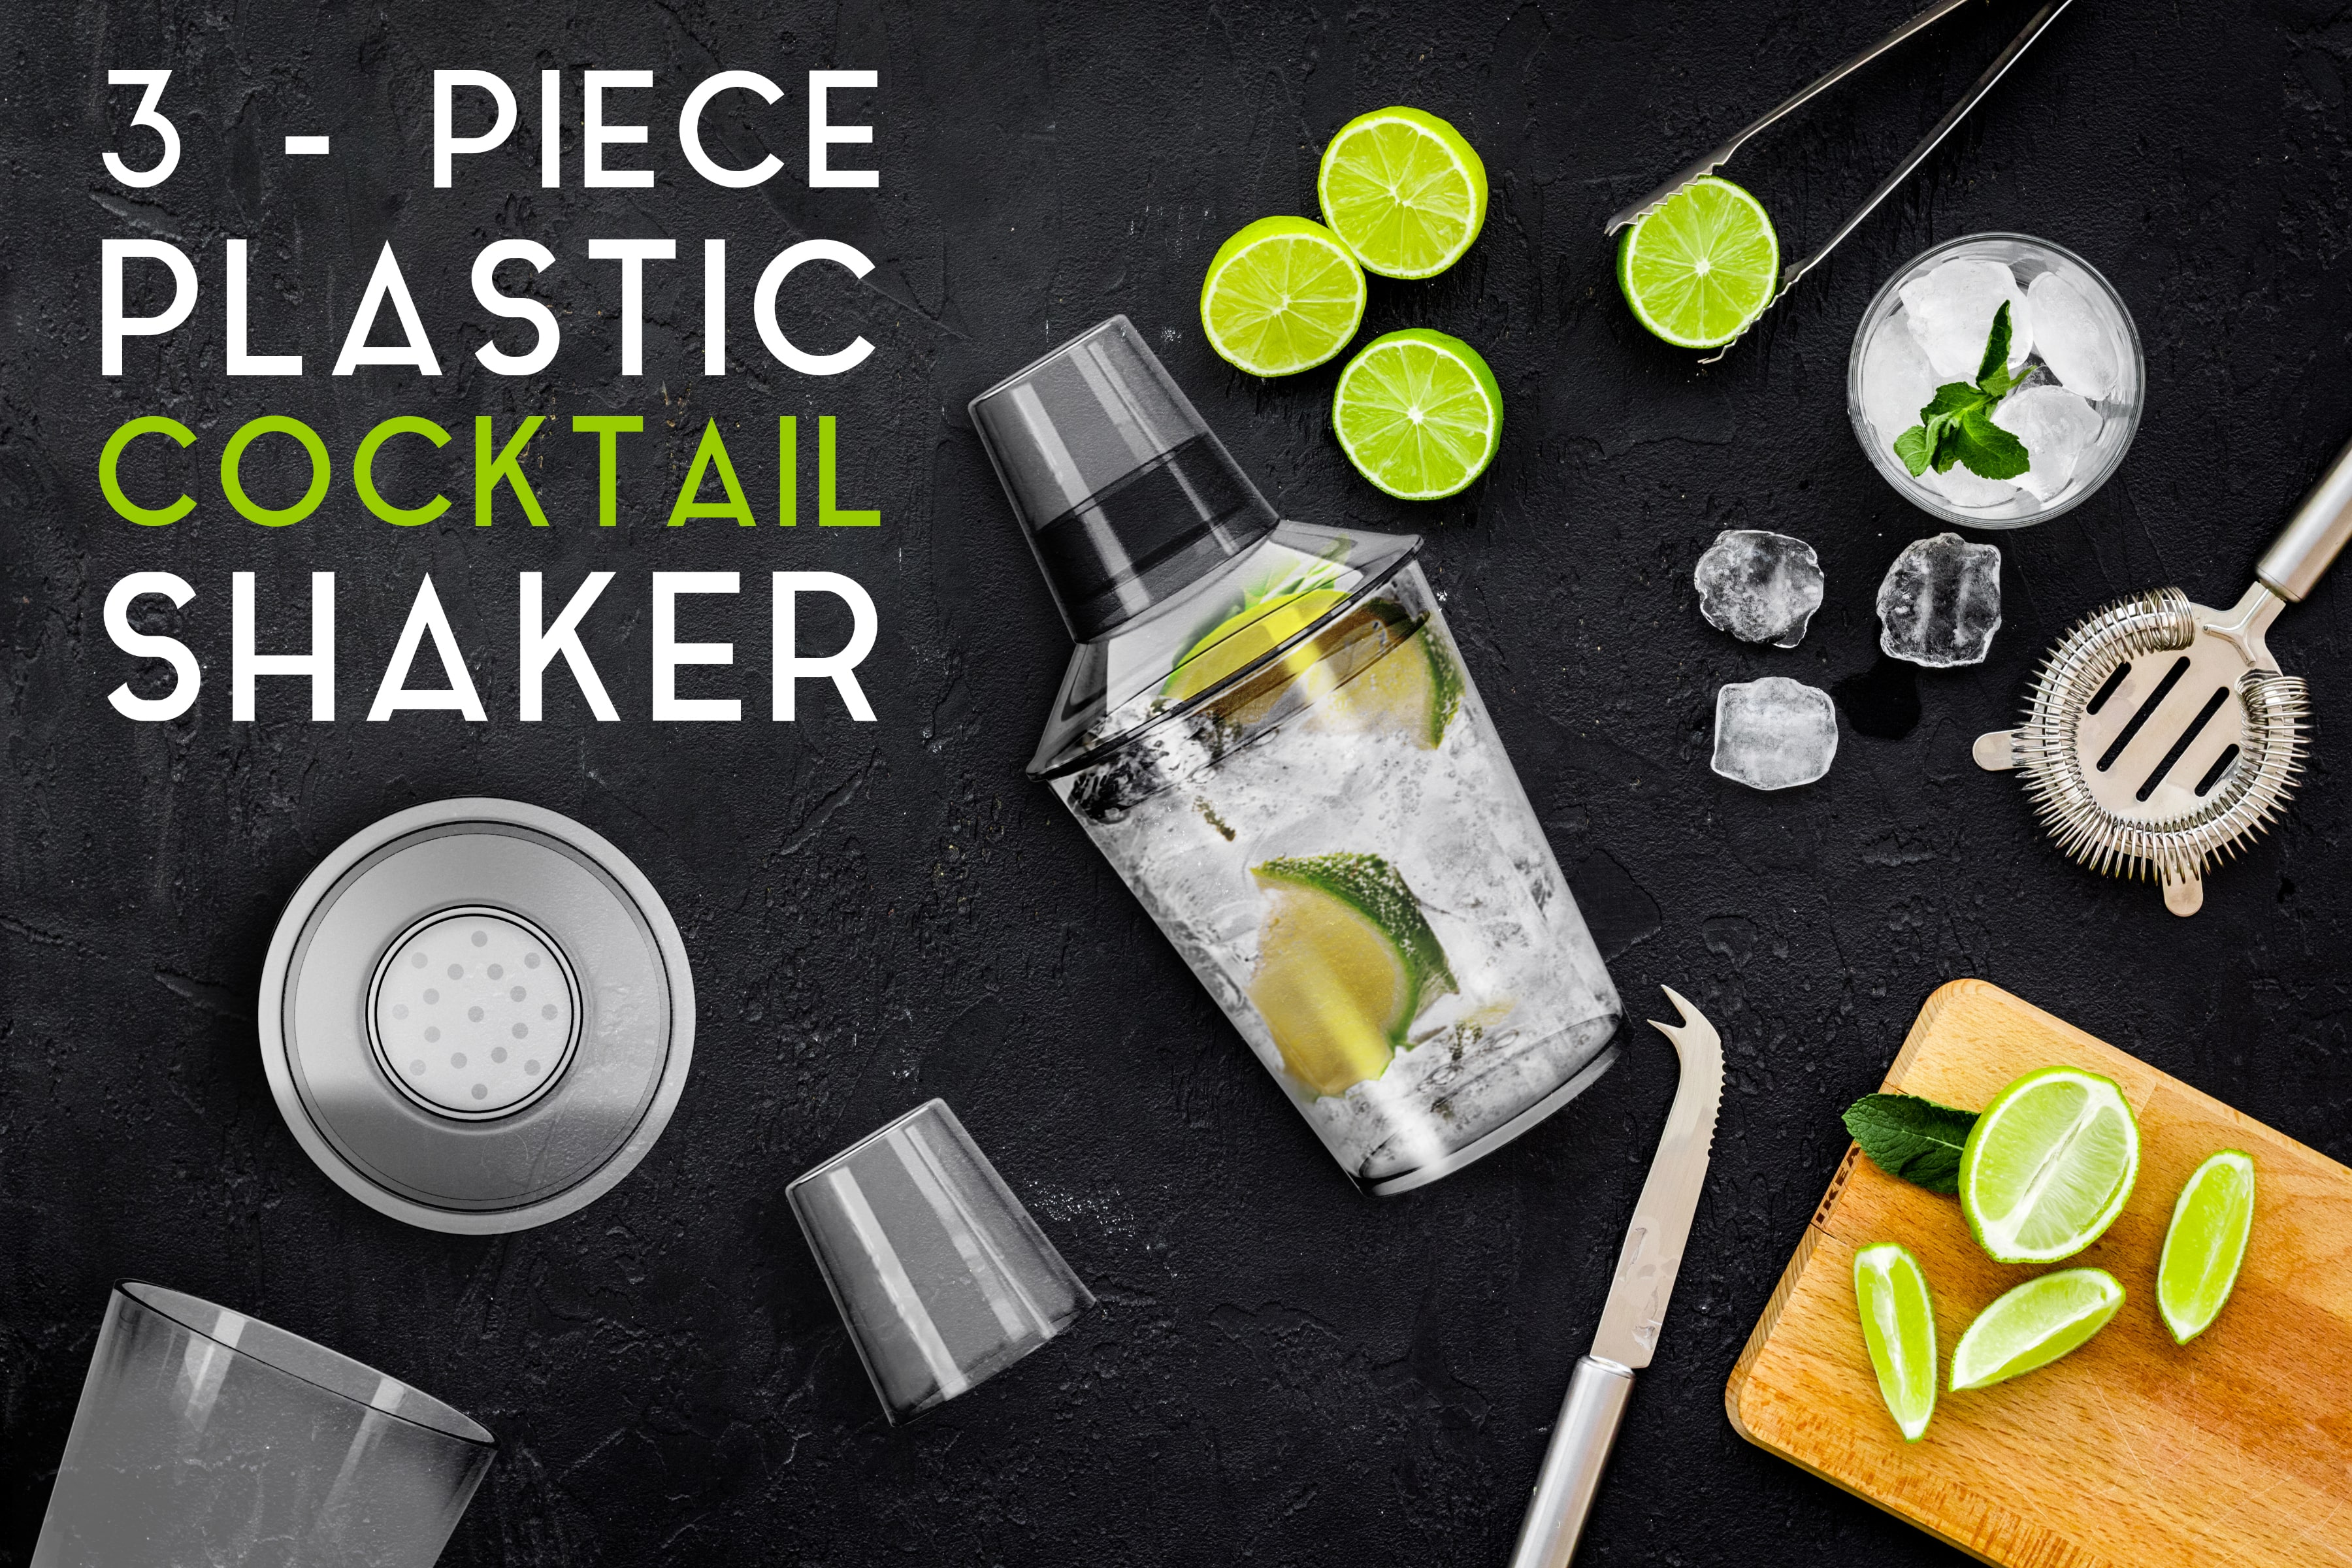 3 piece cocktail shaker